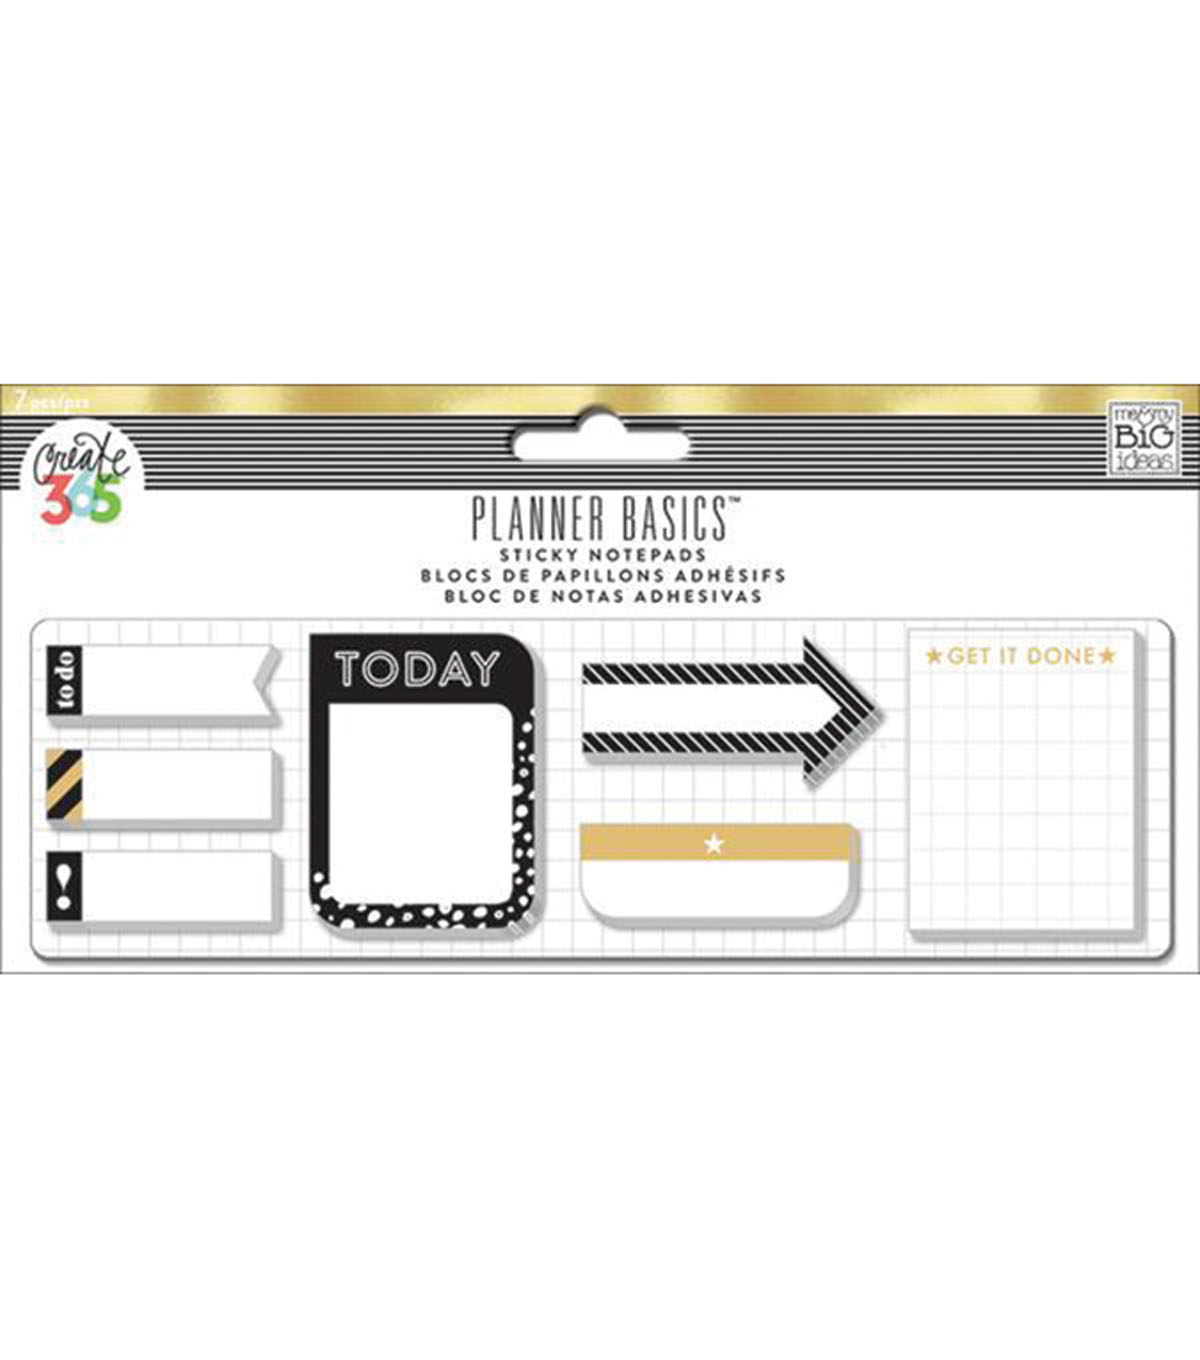 Me & My Big Ideas Planner Basics 7 pk Sticky Notepad-Black, White & Gold